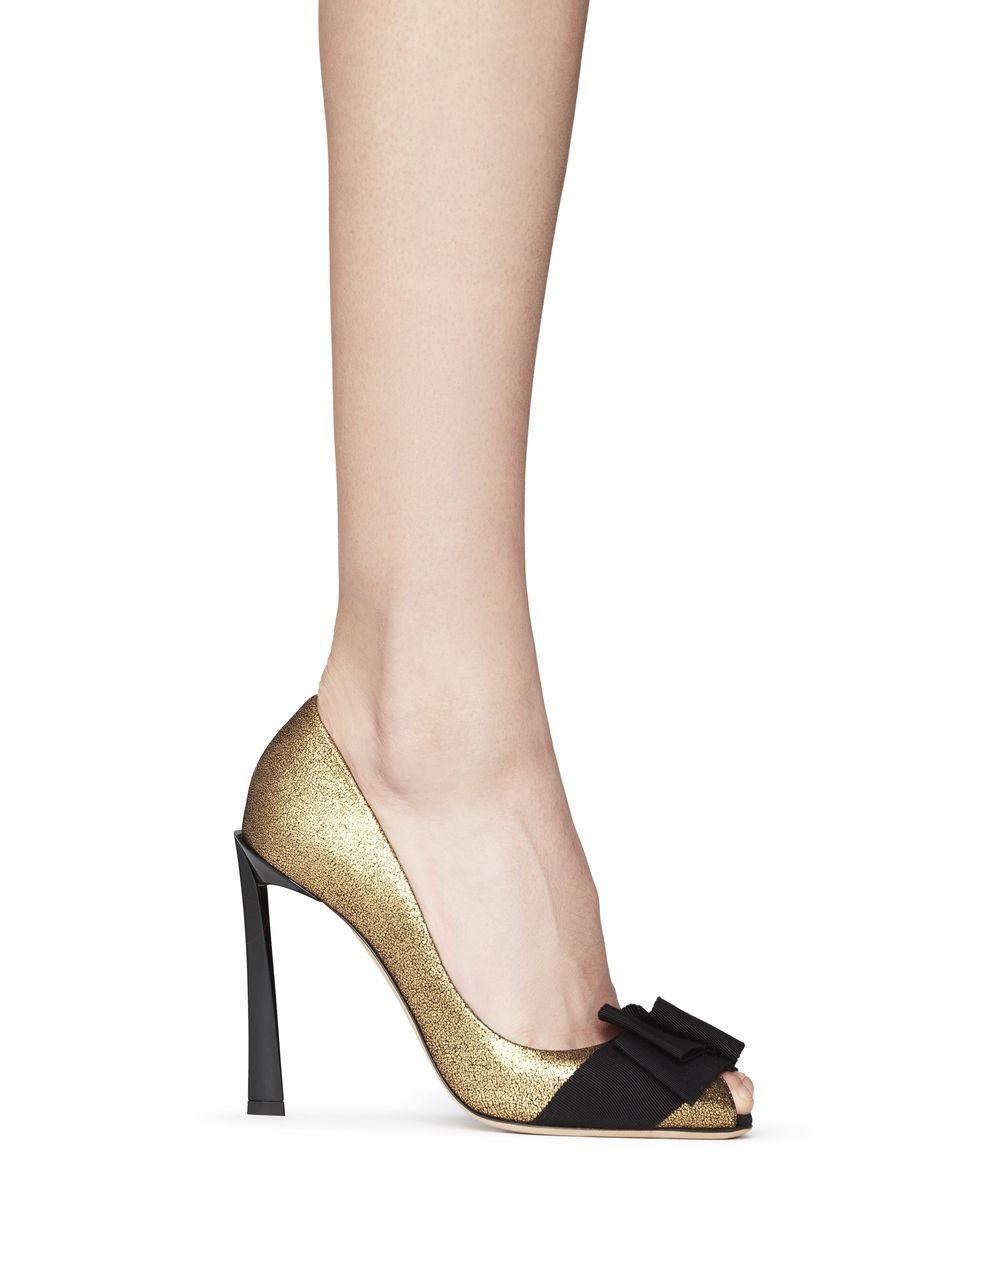 ESCARPIN OPEN TOE AVEC NŒUD OR - Lanvin